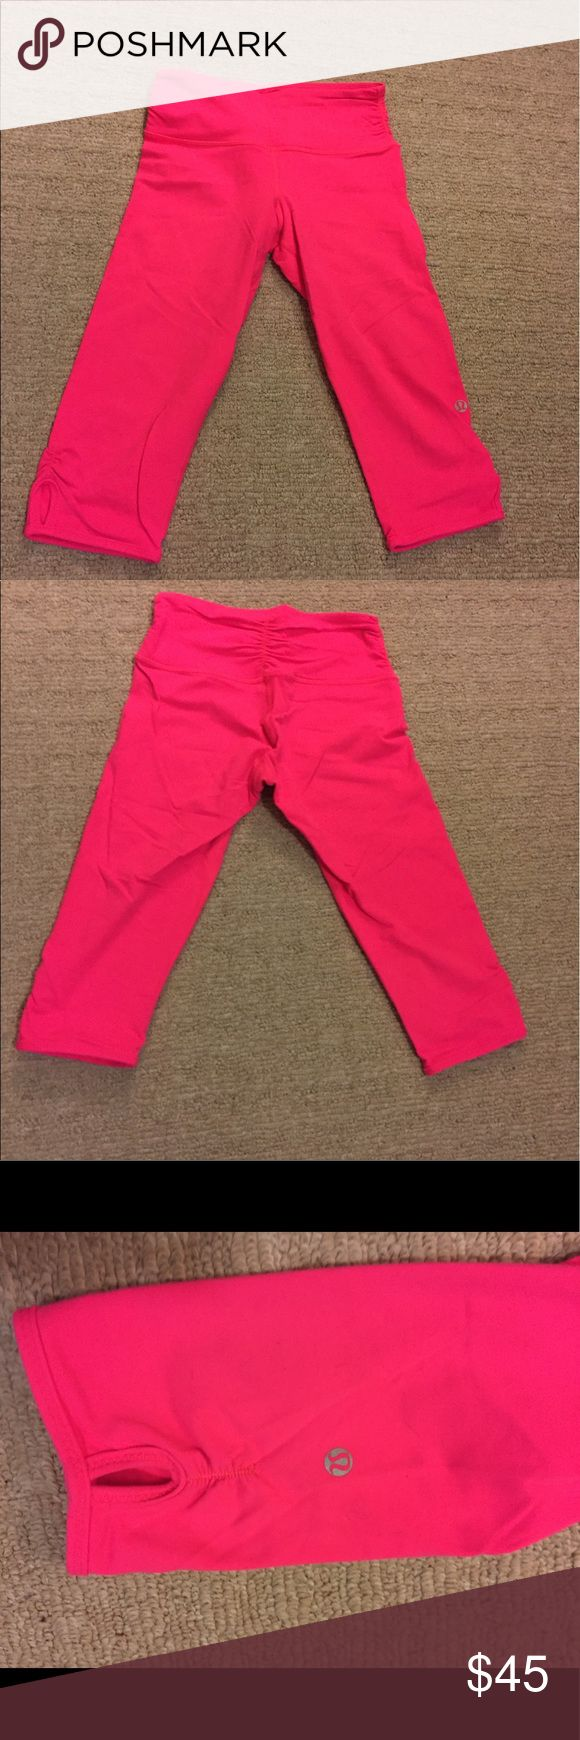 Lululemon neon pink crop leggings (sz2) Size 2 lululemon crop leggings in a bright neon pink. Keyhole details on each leg and scrunch detailing at waist and in back. Very flattering! lululemon athletica Pants